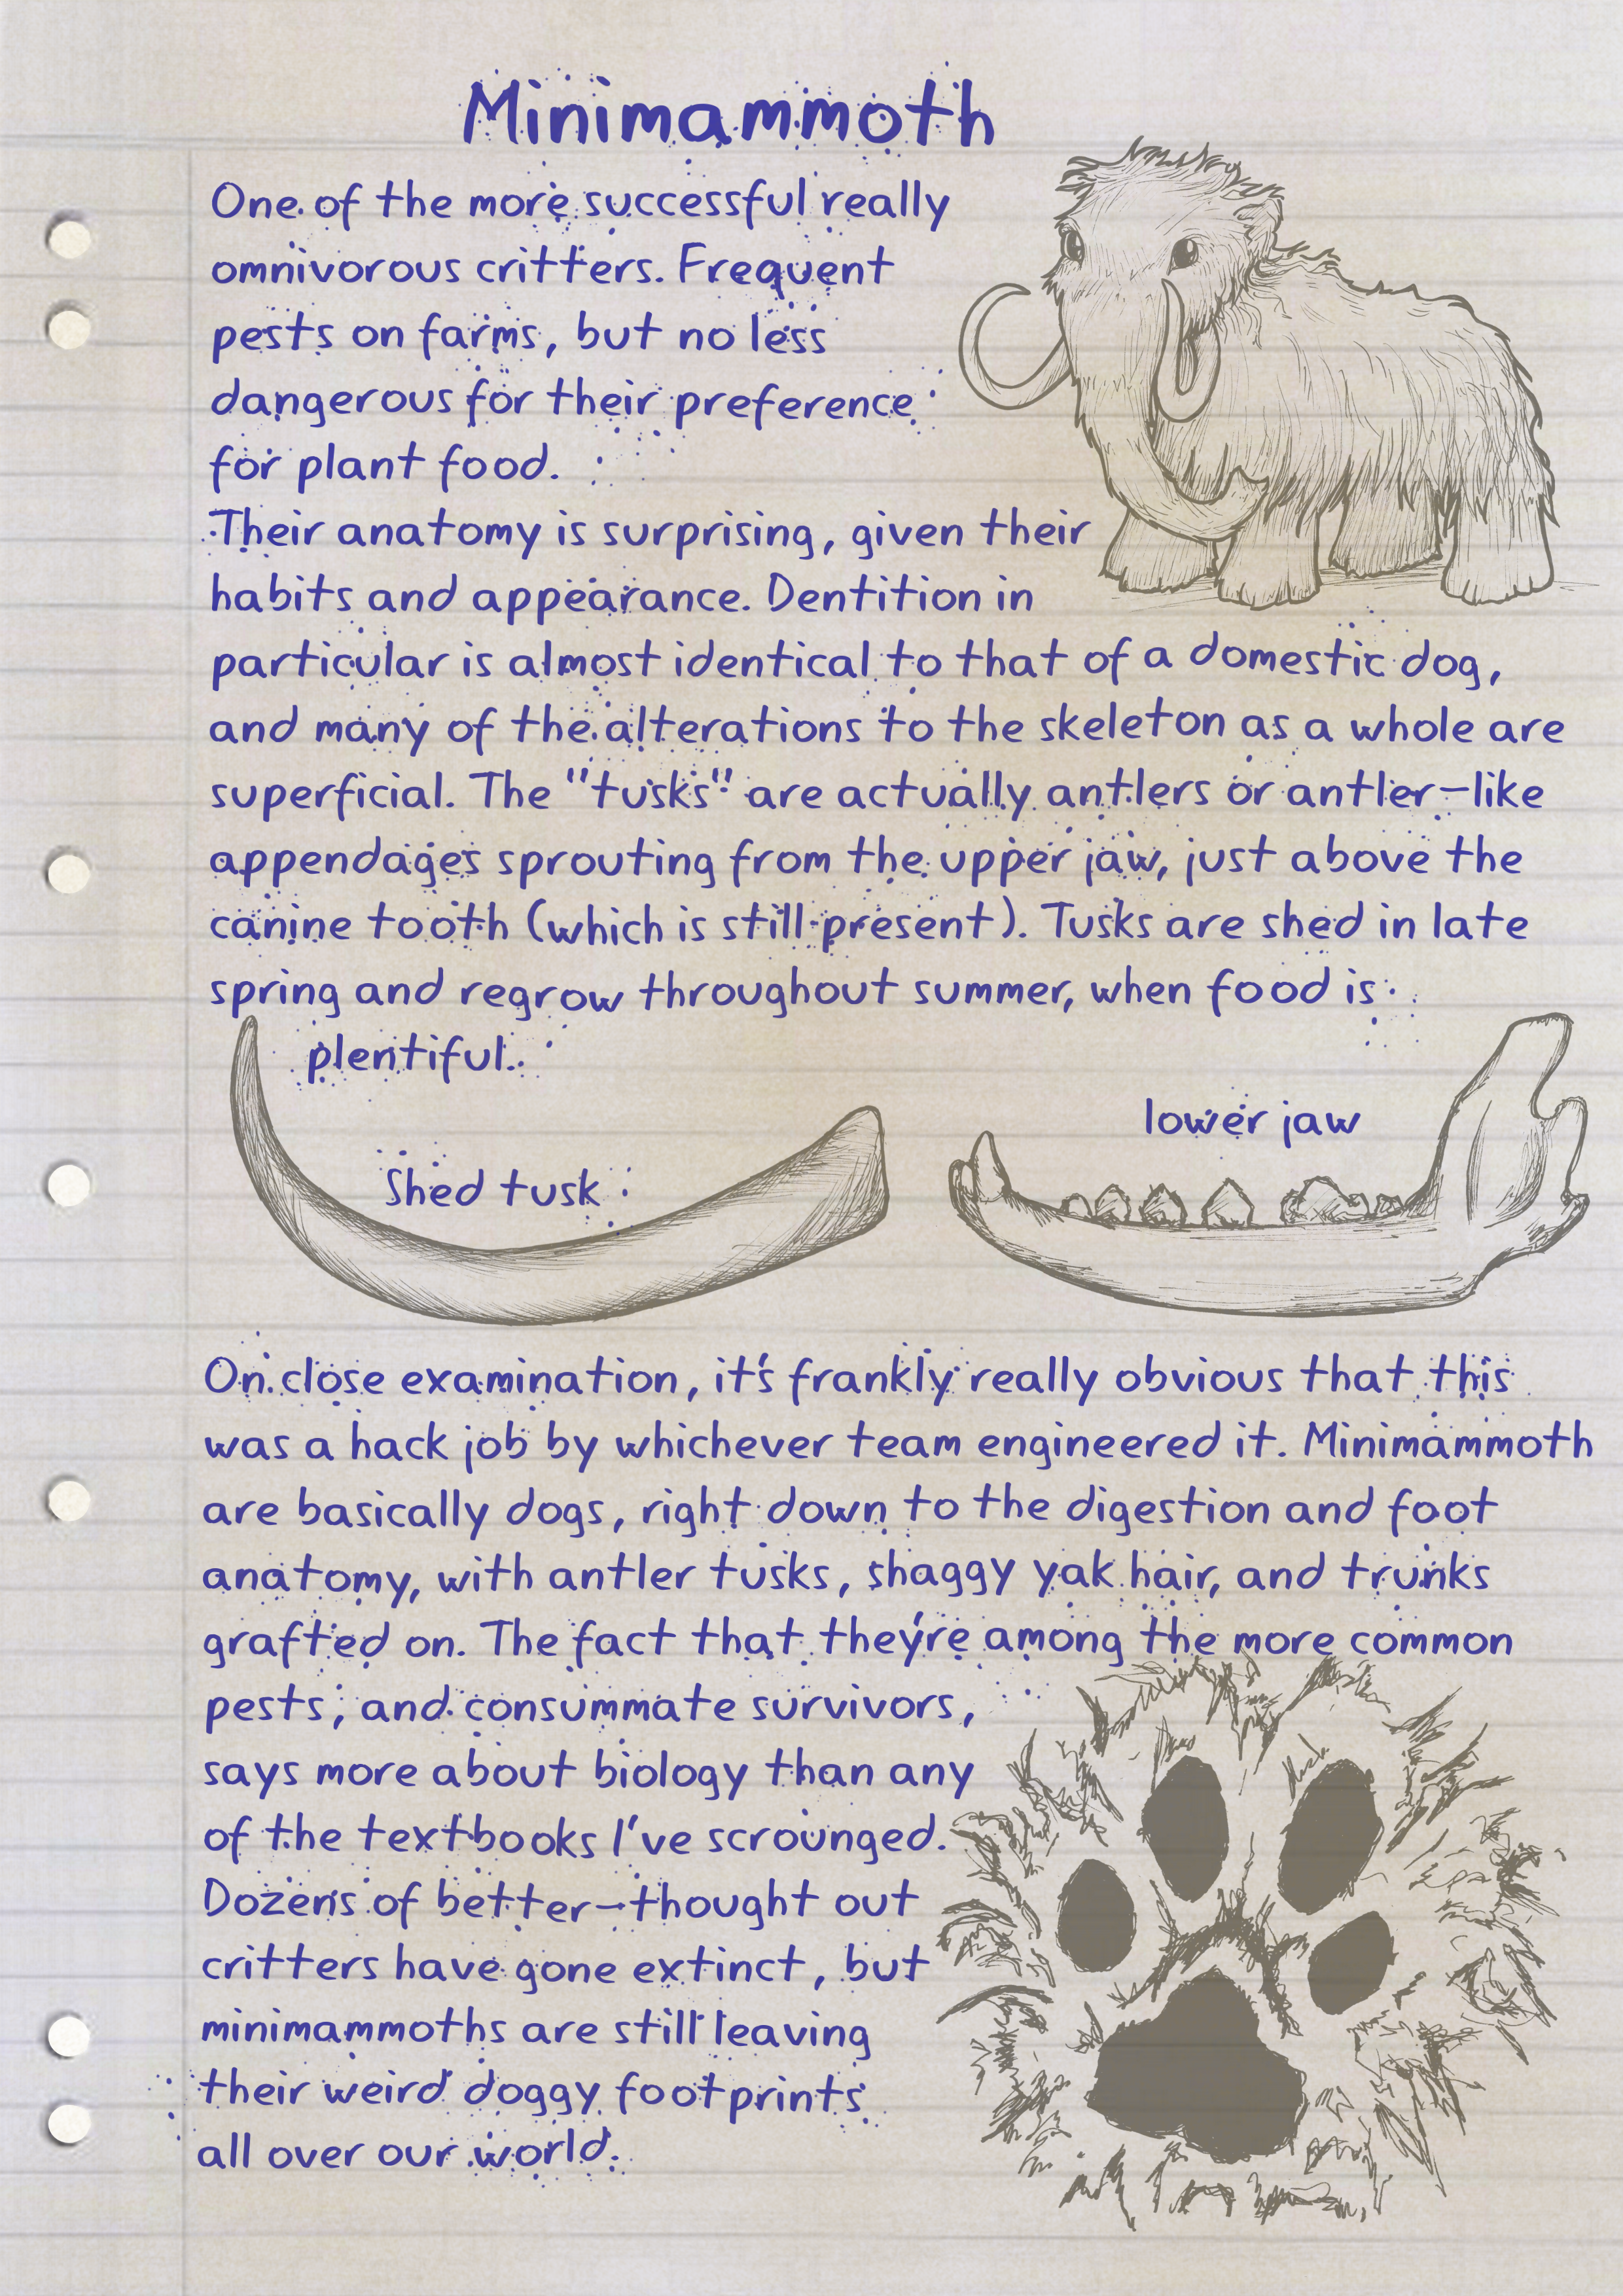 Notes on minimammoths, with illustrations. Click for full transcription.